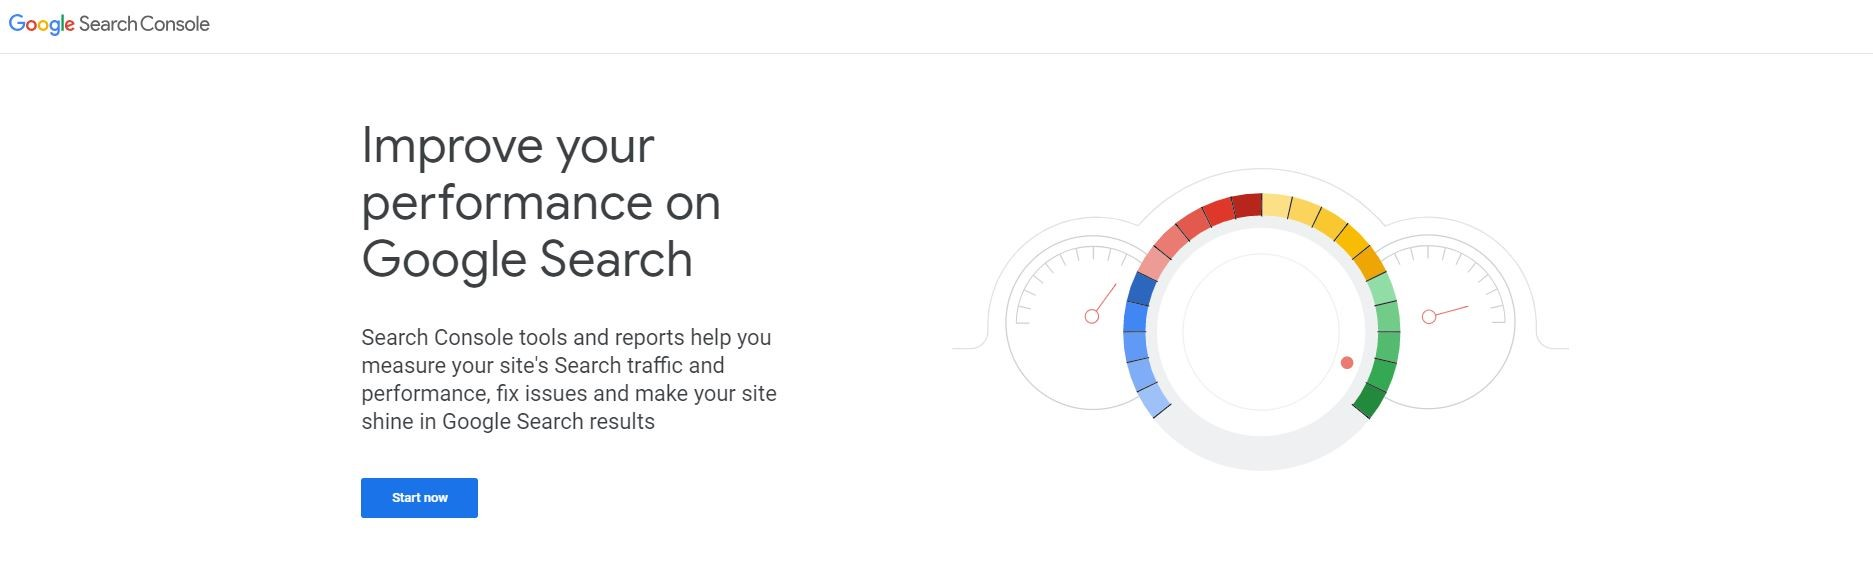 Google Search Console - Digital Marketing Tools 2019